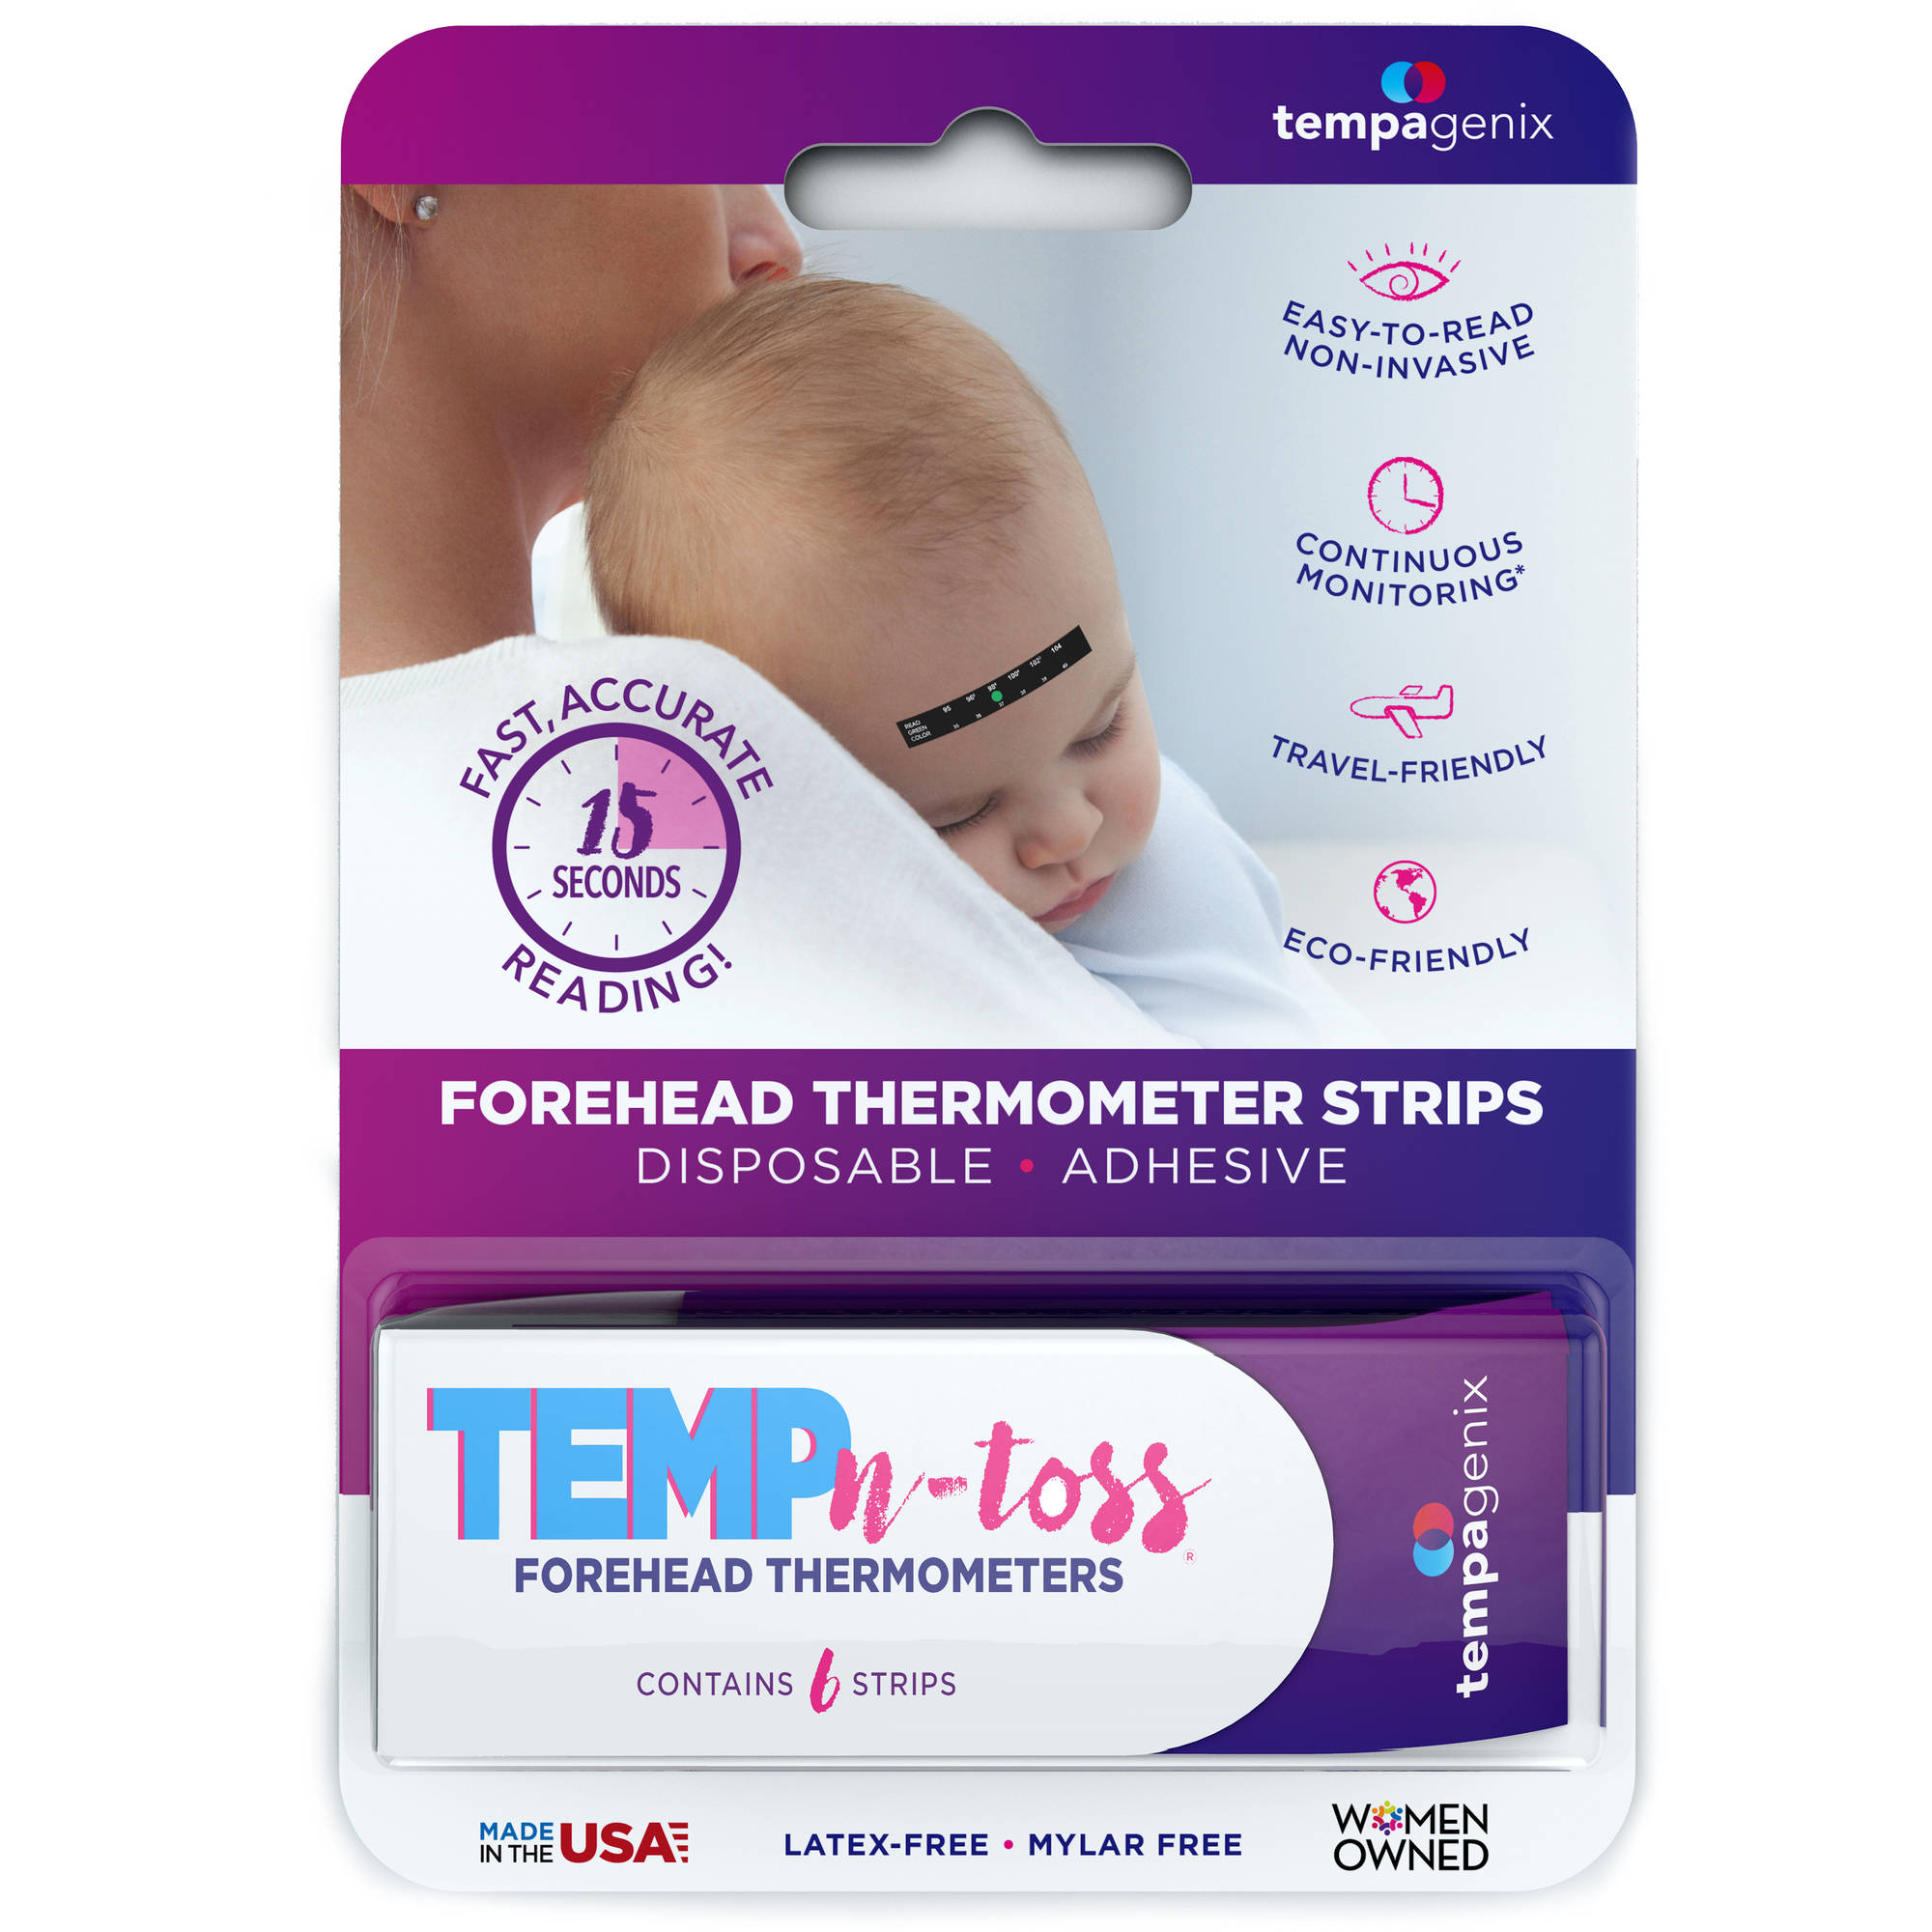 Temp N Toss Disposable Forehead Thermometer Strips